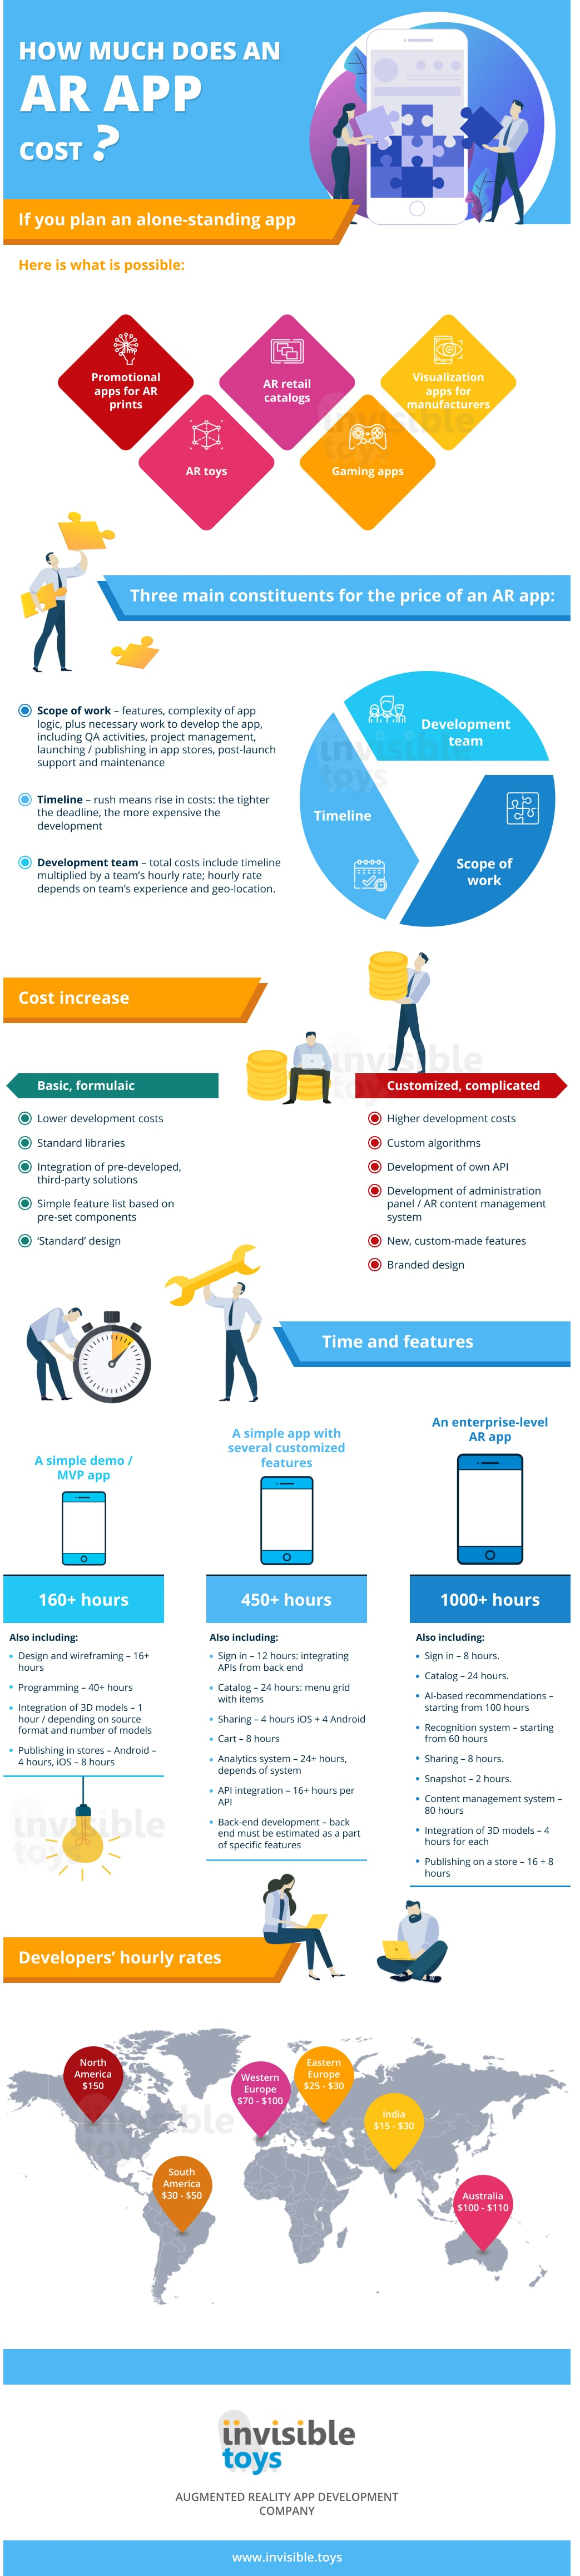 augmented reality app development cost